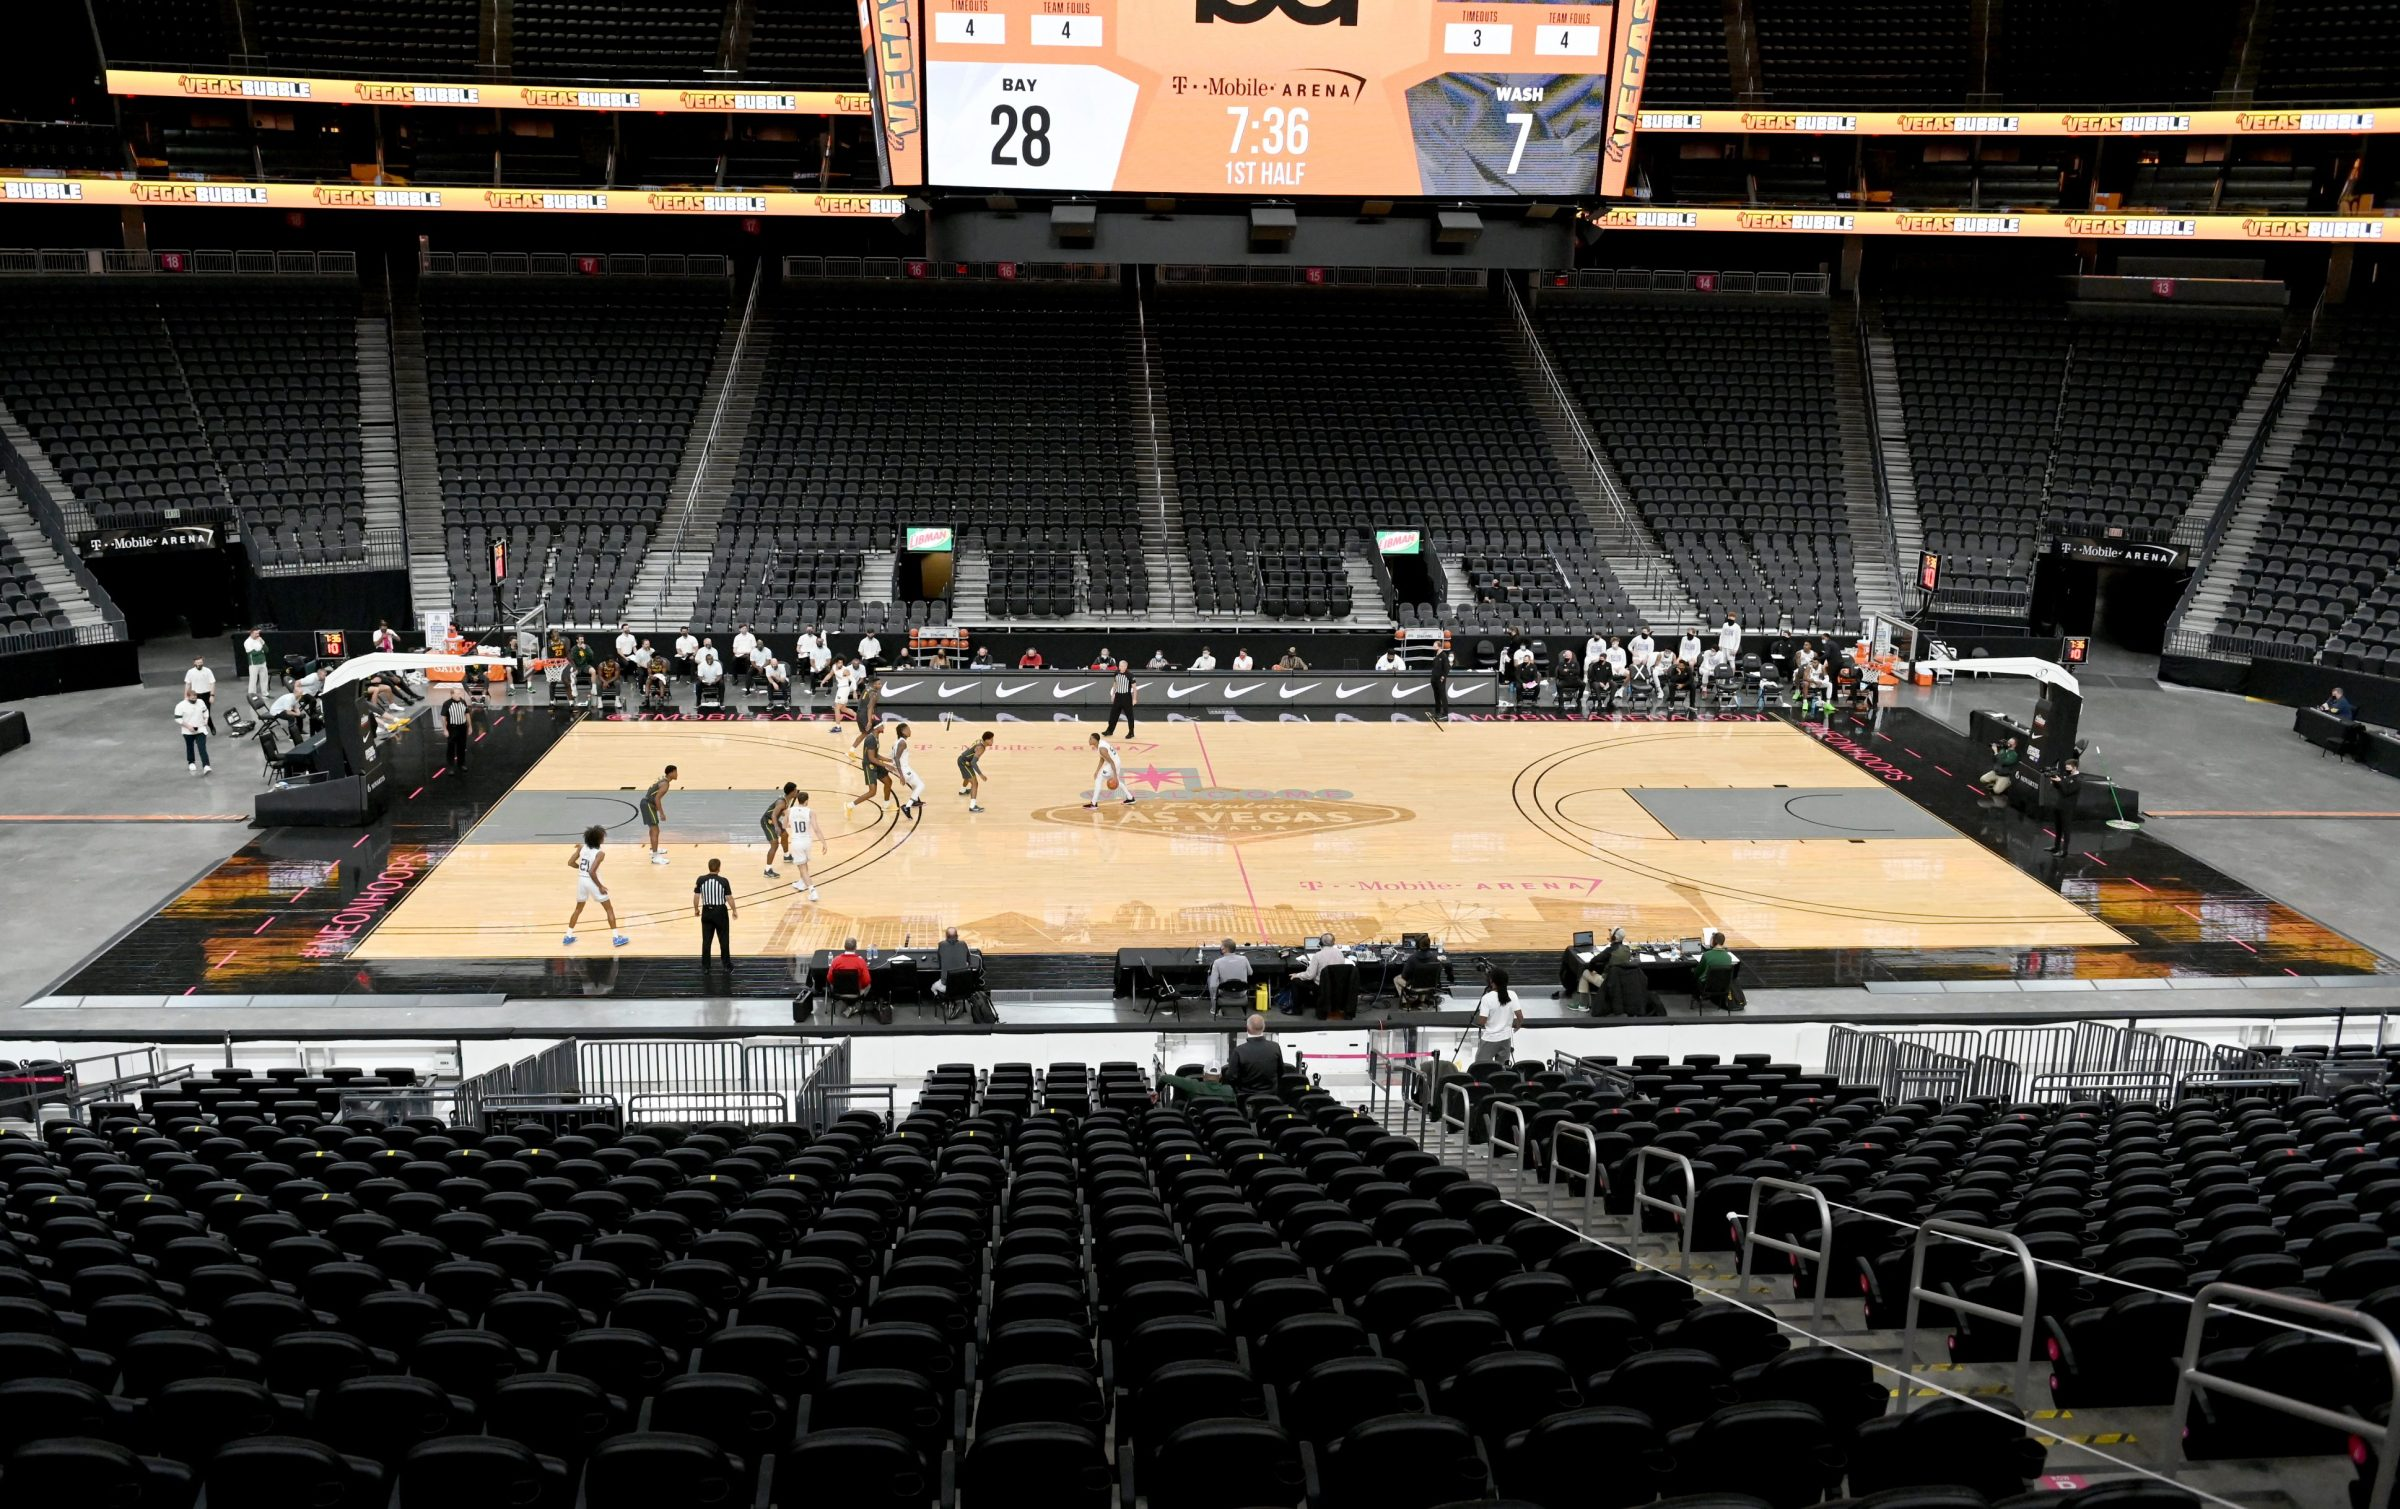 The Washington Huskies and the Baylor Bears play in the first half of their game during the #VegasBubble basketball tournament in an empty T-Mobile Arena